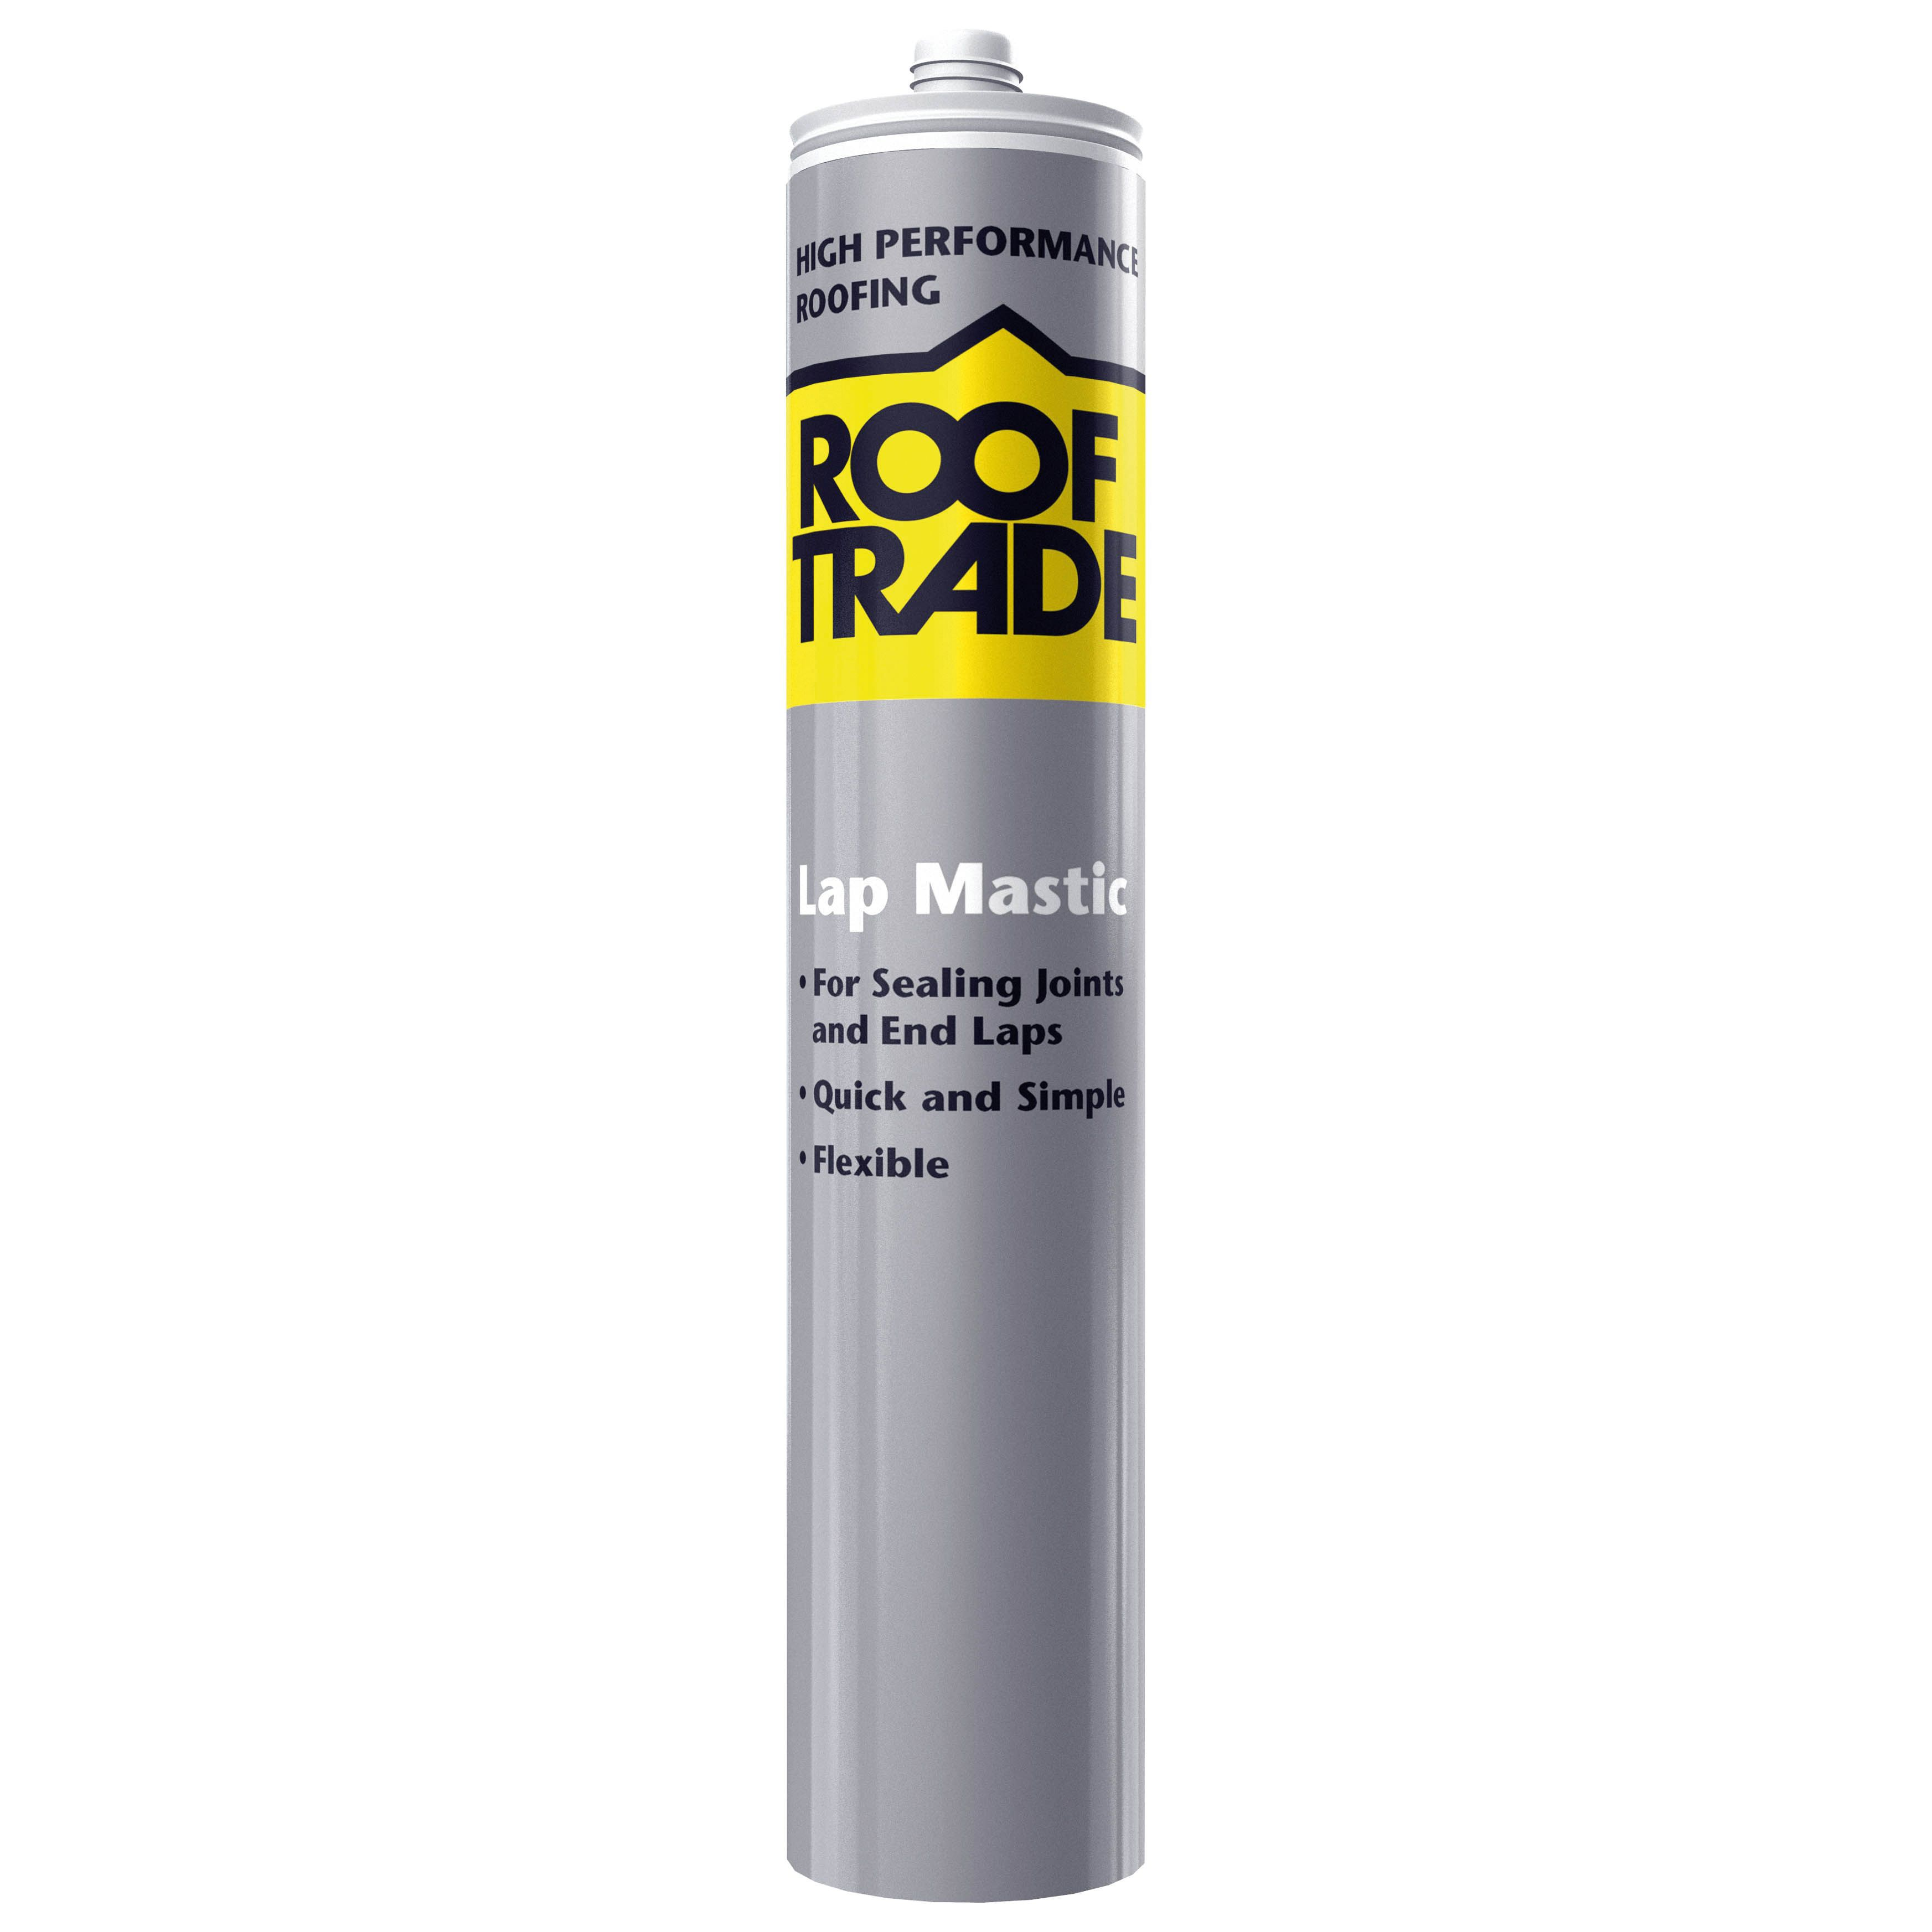 Kitchen Painting Cabinets Rooftrade Black Lap Mastic Sealant 310ml Departments